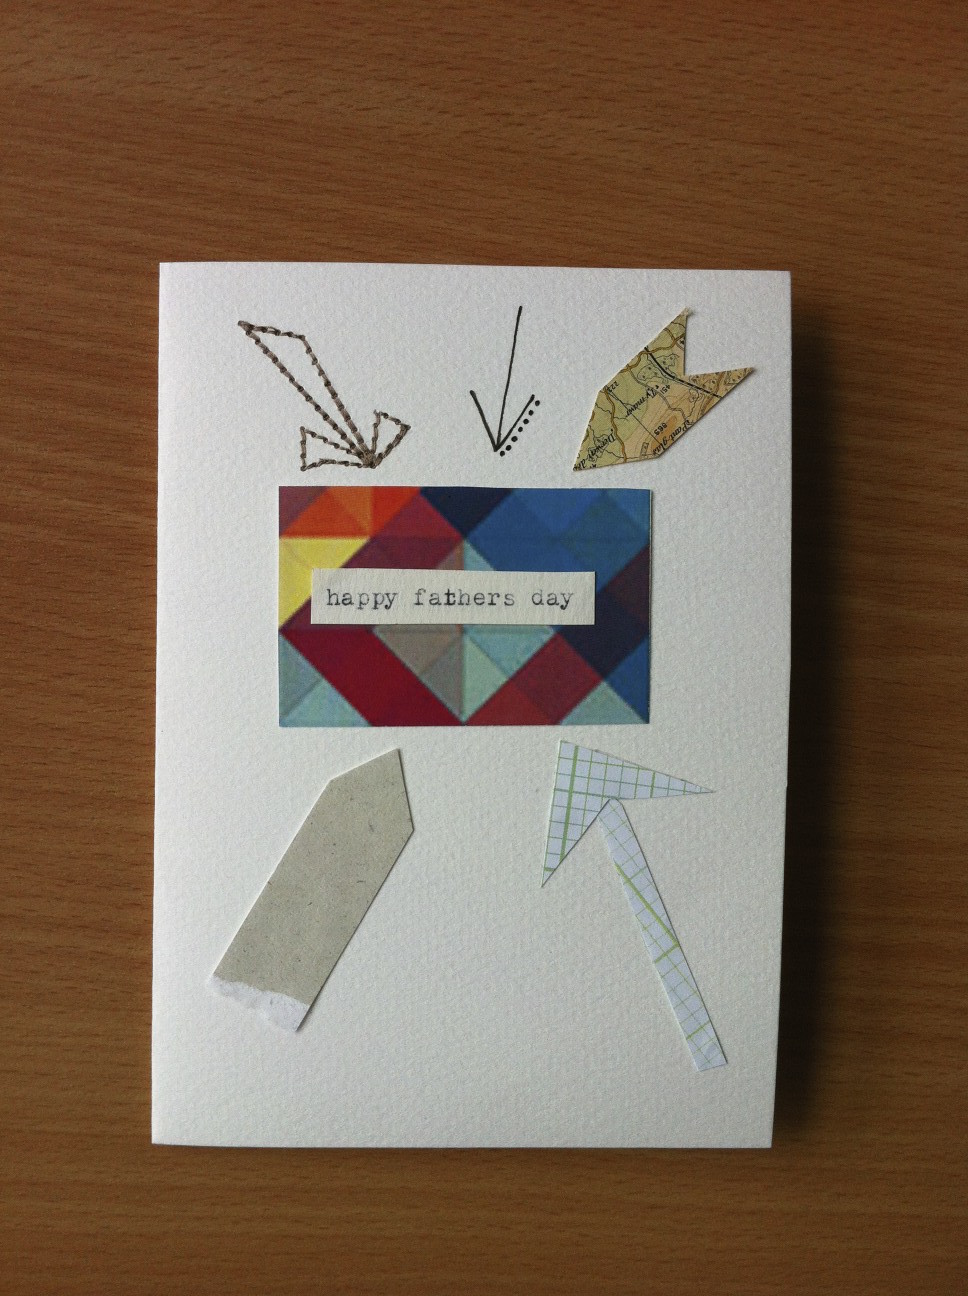 Fathersday_Card_personalised_bespoke_design_and _message.jpg